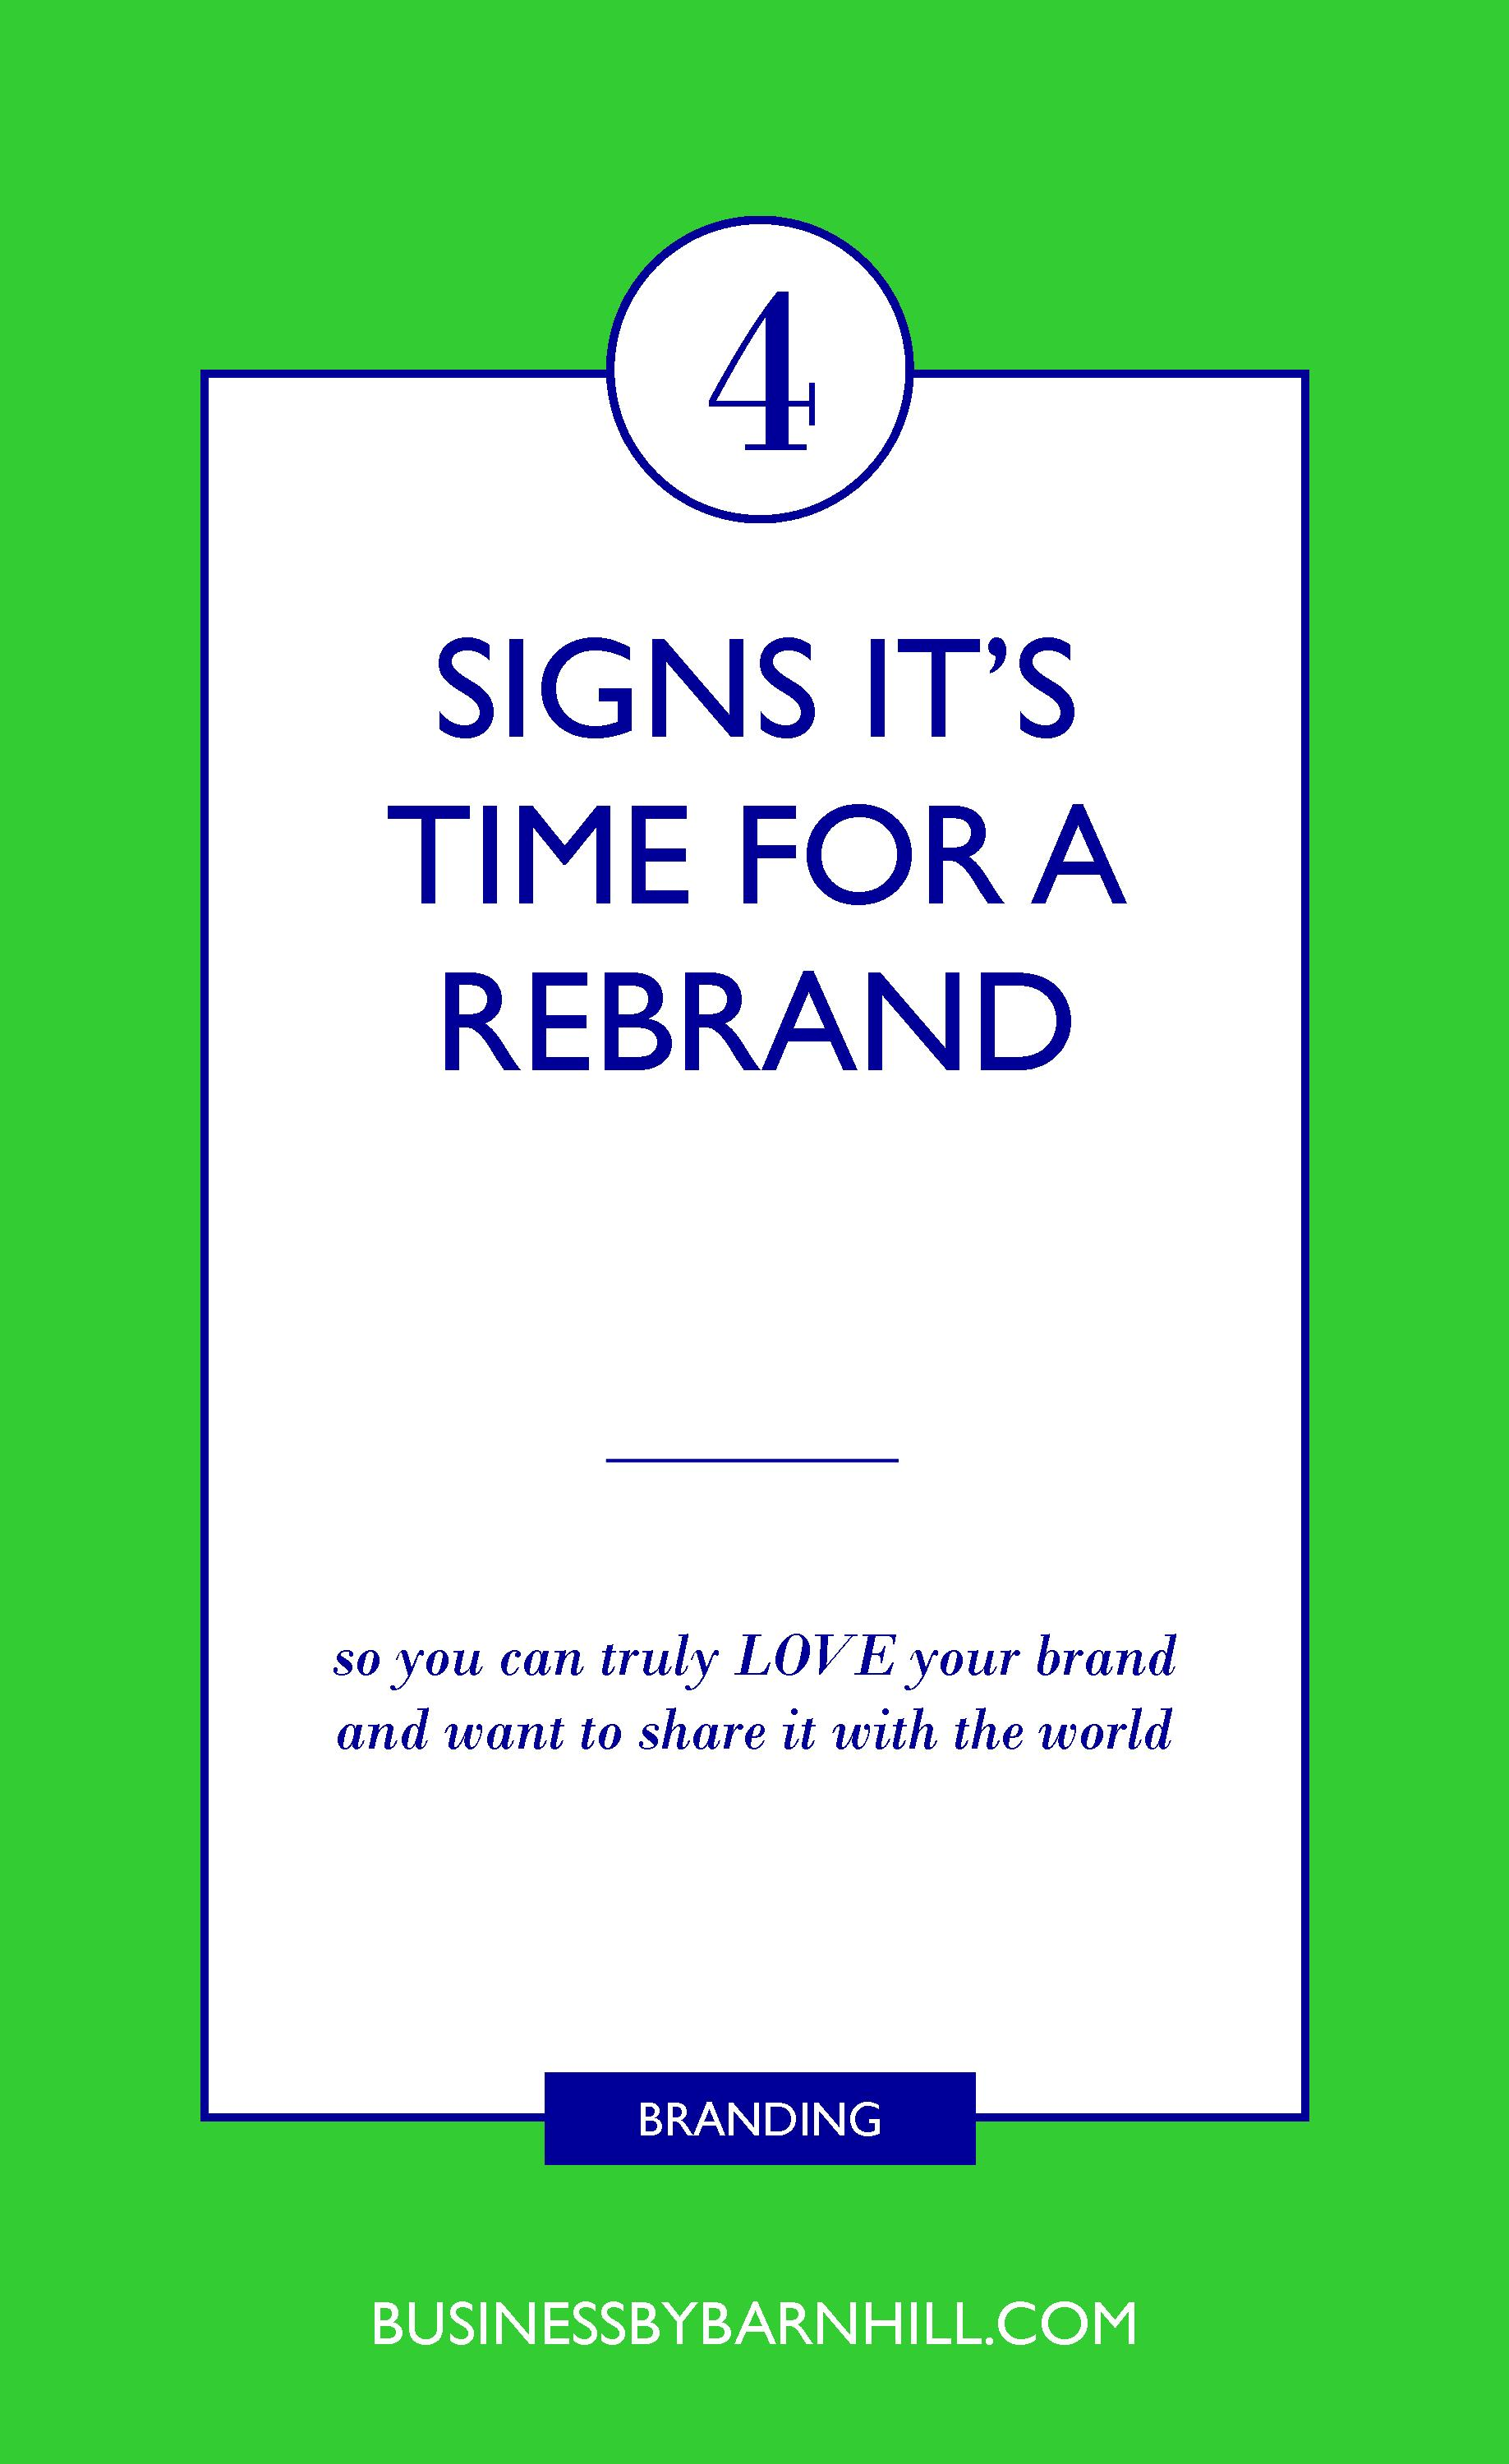 business by barnhill pinterest 4 signs it's time for a rebrand.jpg